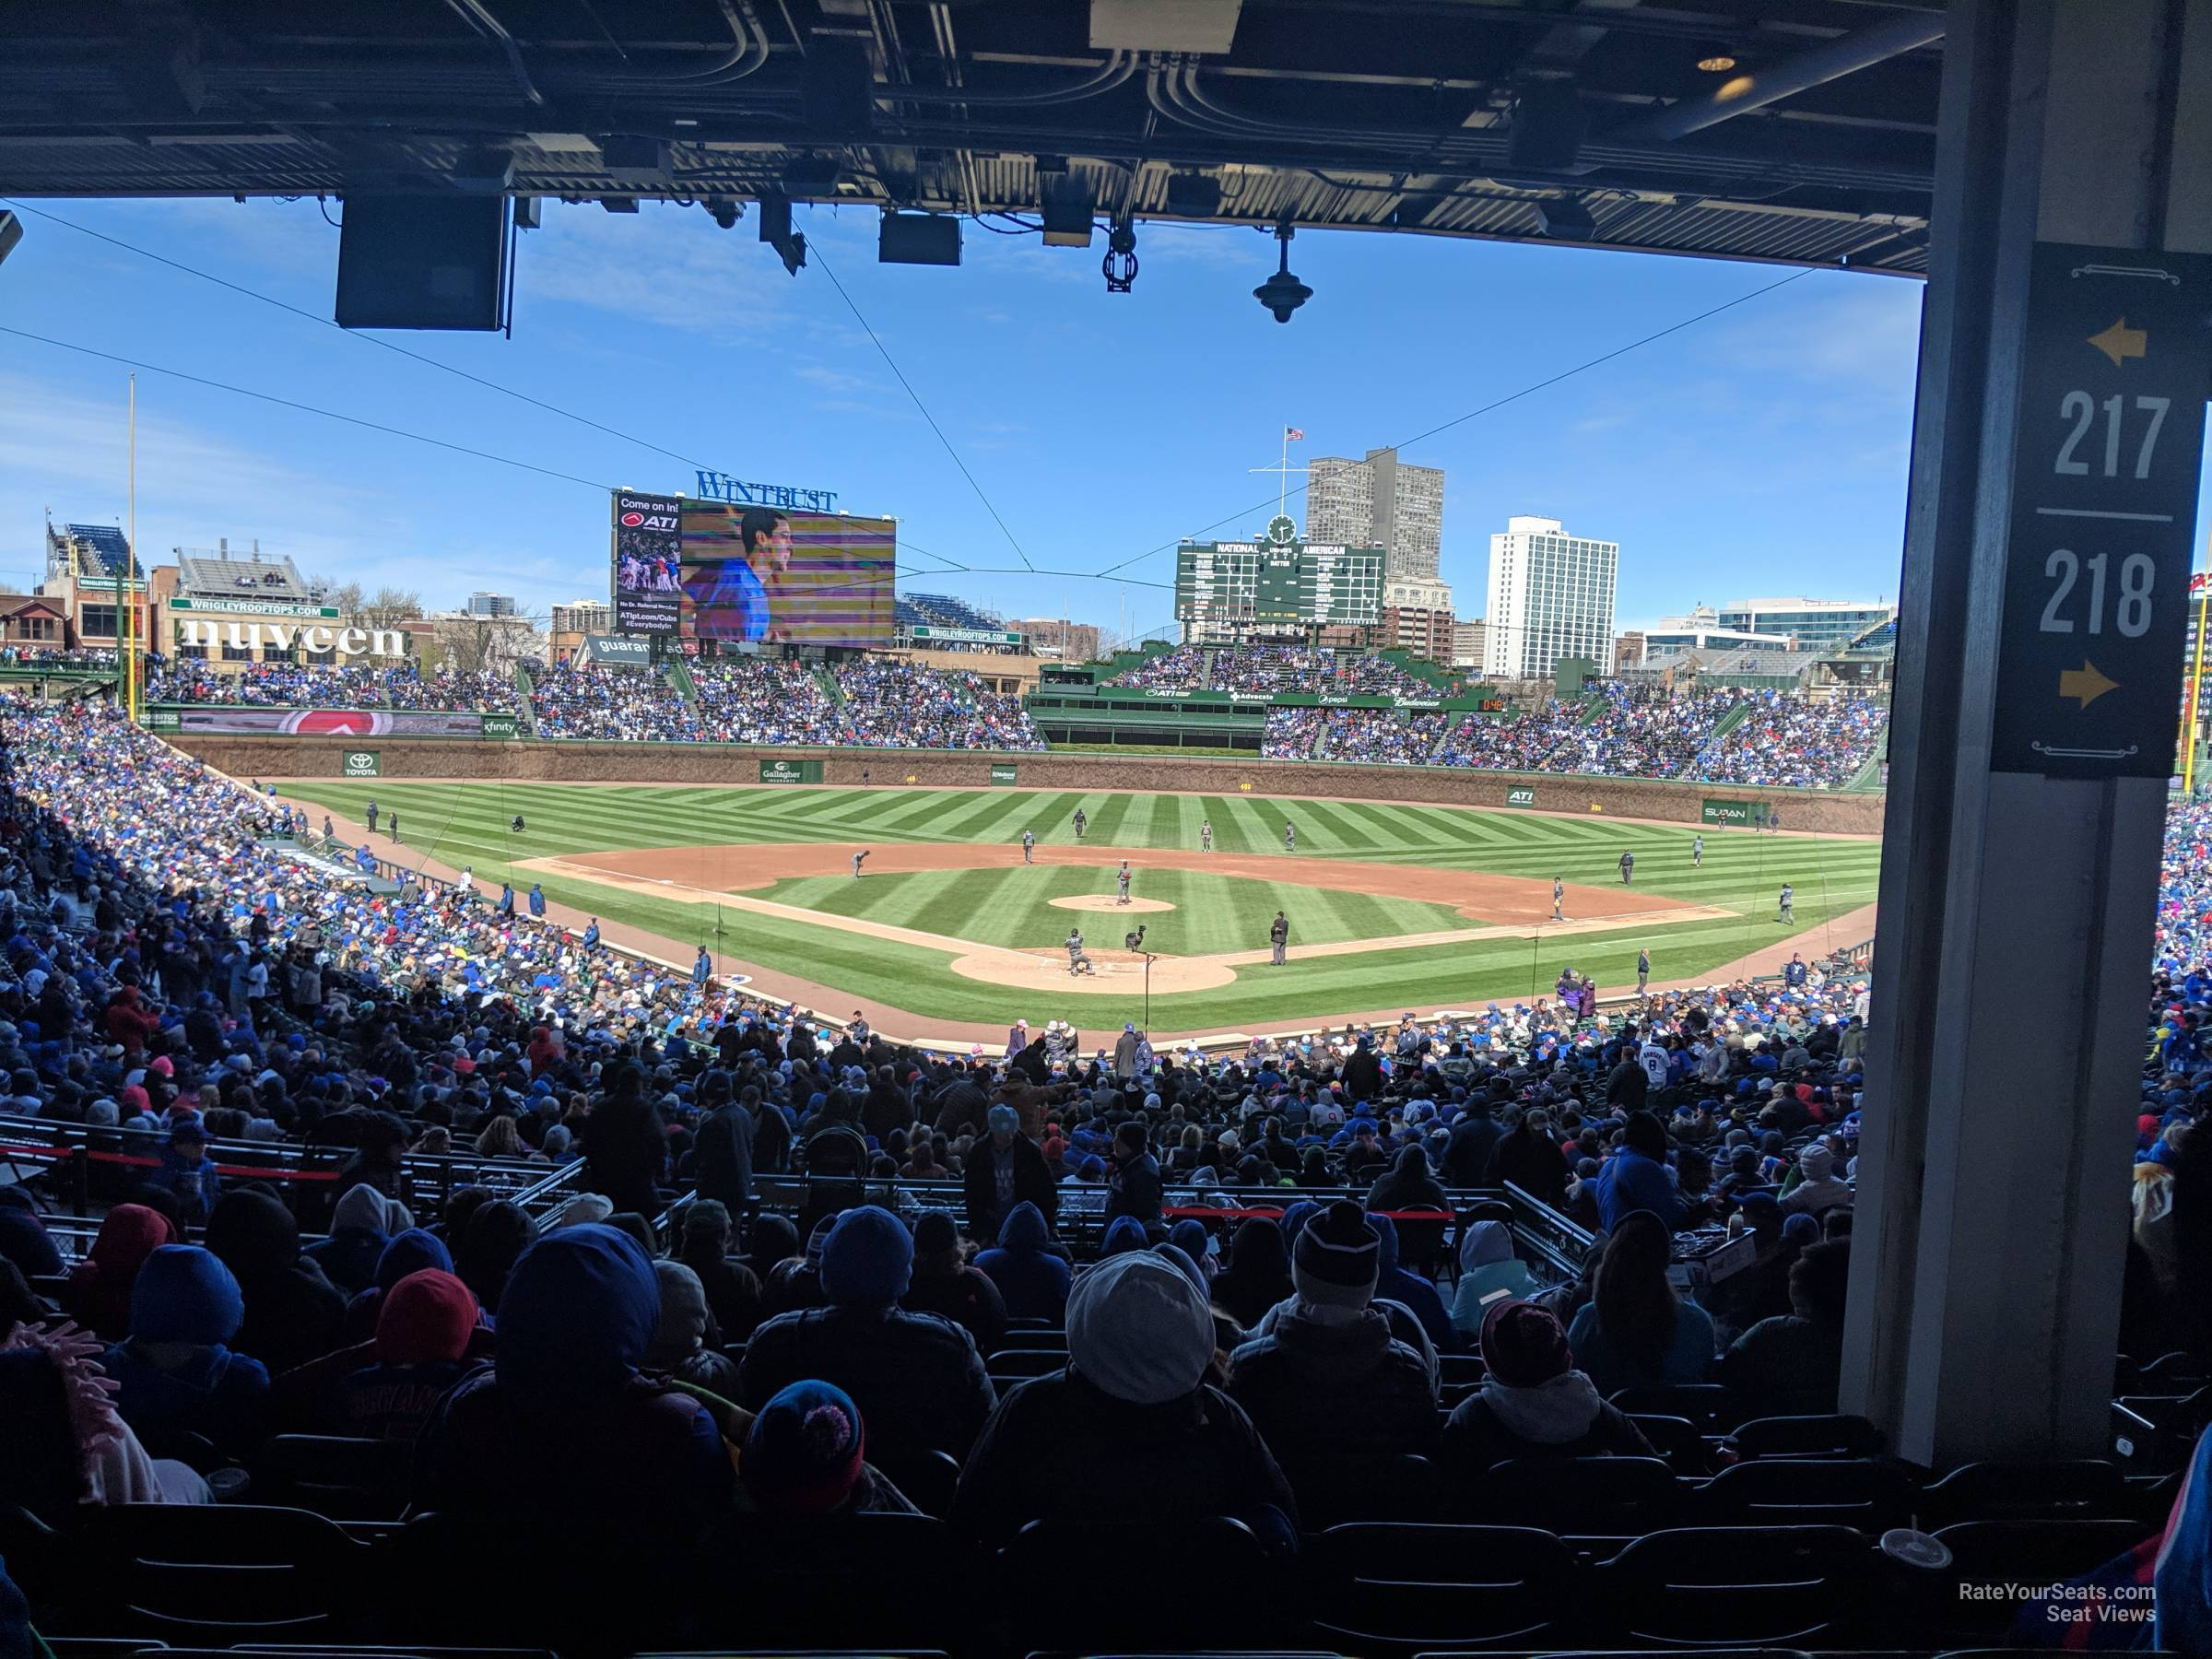 Seat View for Wrigley Field Section 217, Row 12